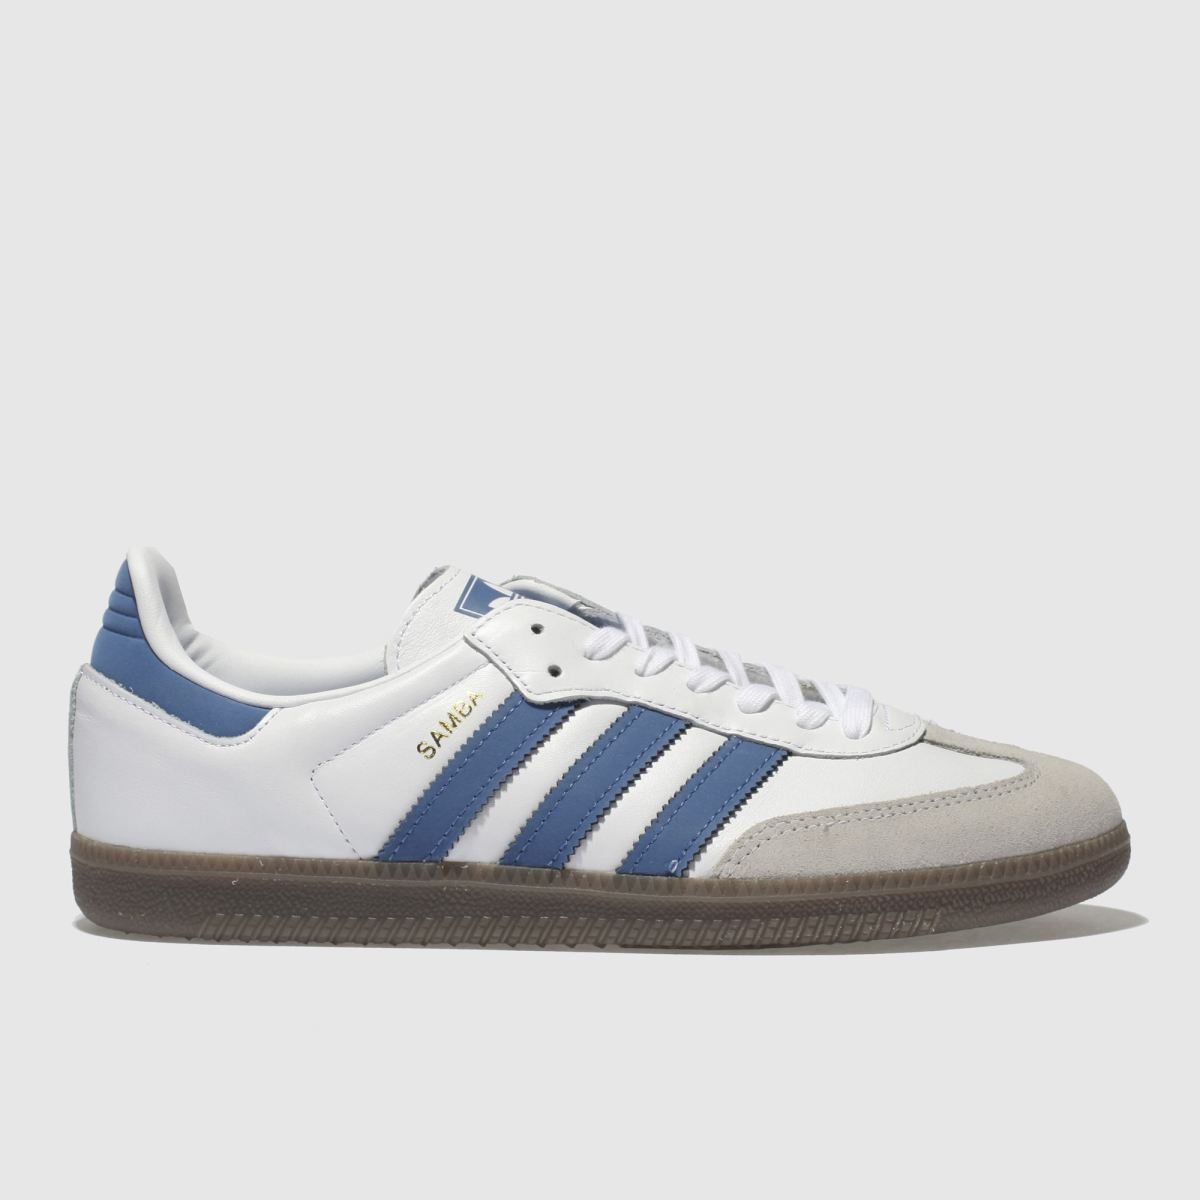 the latest eaa84 cc3fb ... canada adidas white blue samba og trainers schuh at westquay shop  online f8dca 0acc1